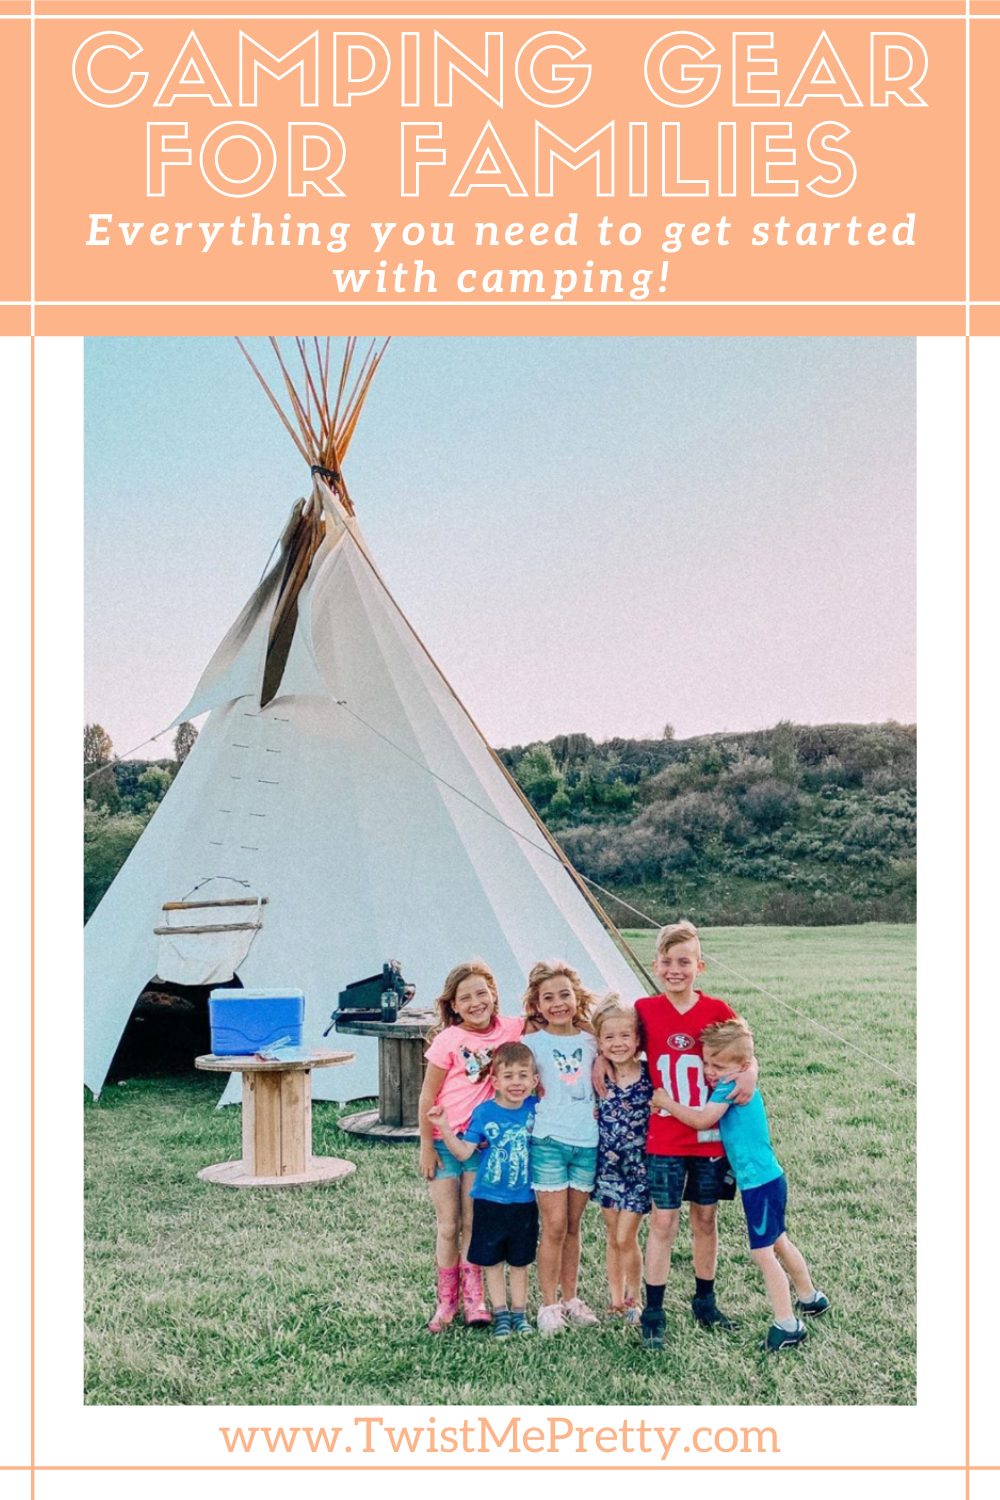 Camping Gear for Families- Everything you need to get started with camping. www.twistmepretty.com